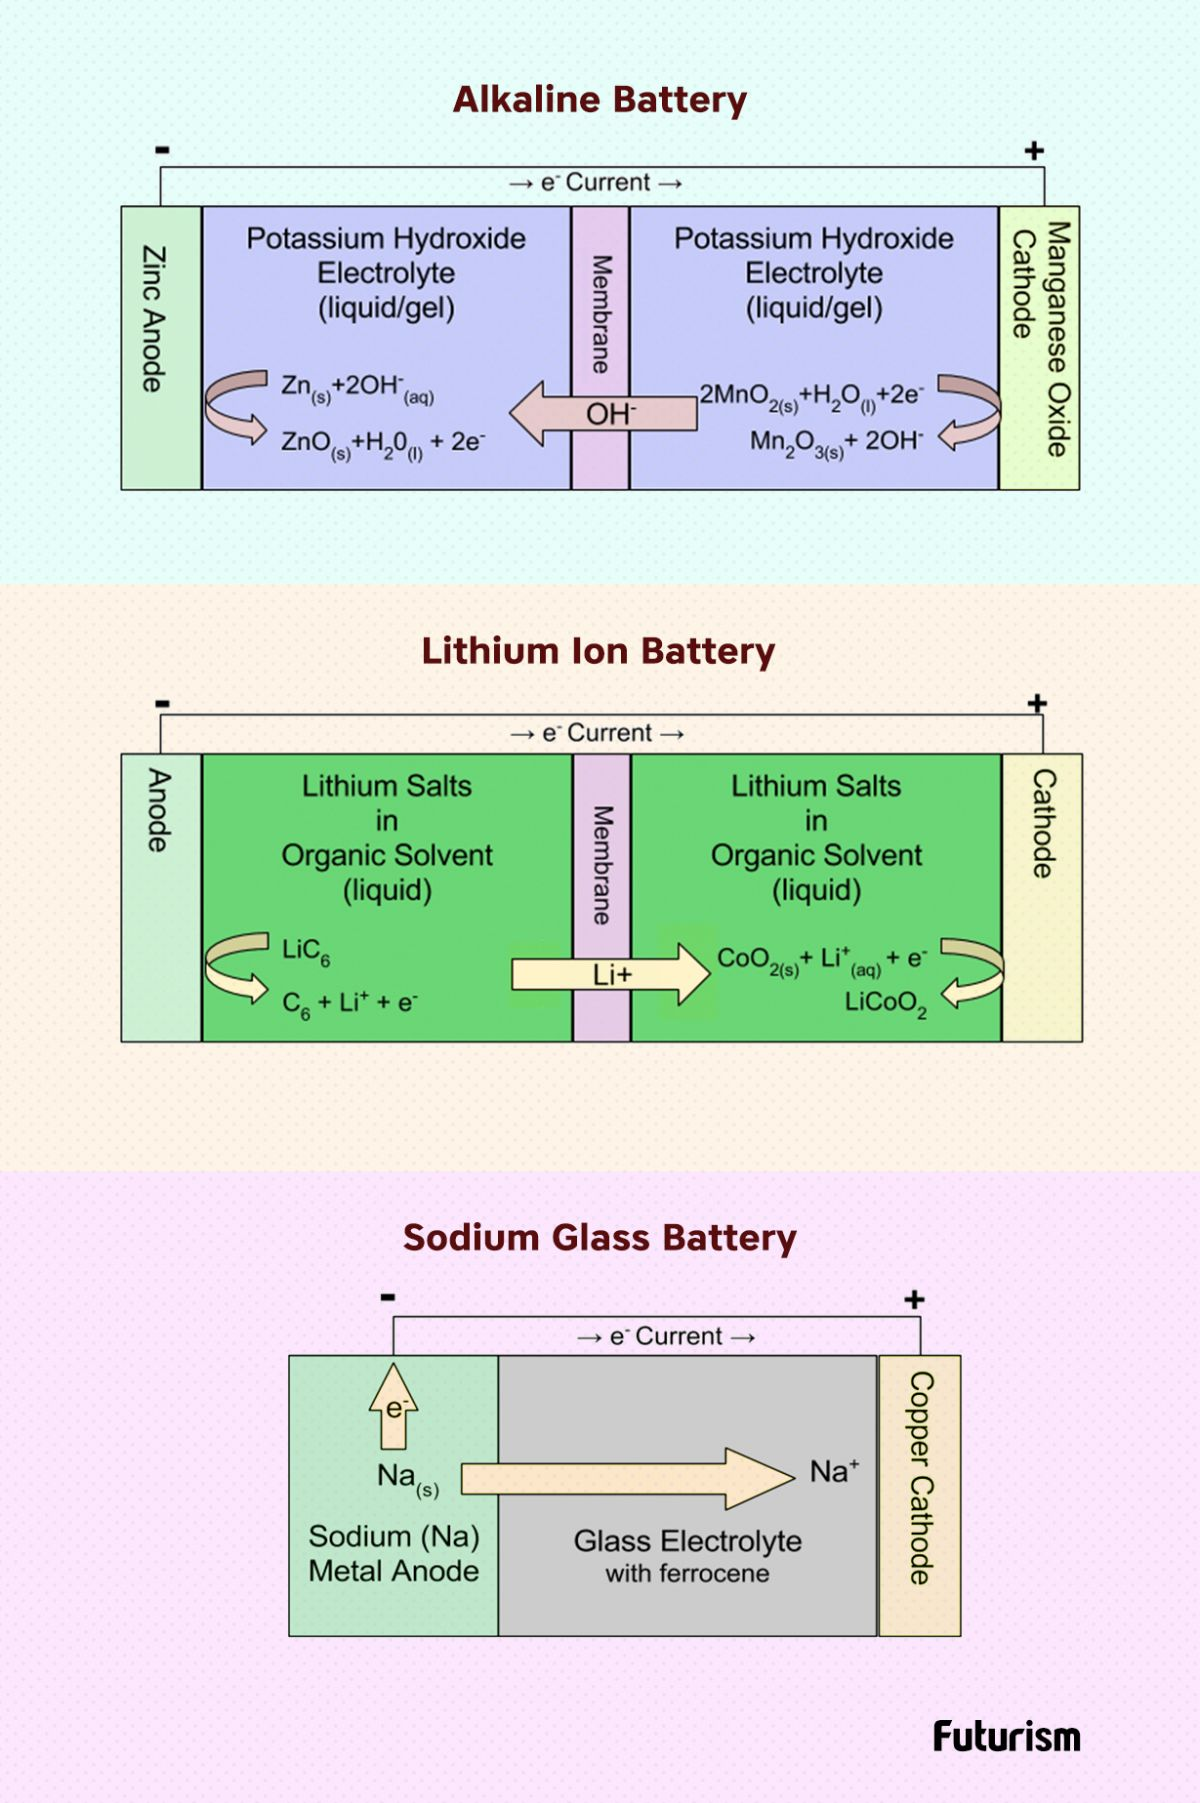 *3* Creator of Lithium-Ion Battery May Spell the End-times for Oil with New Glass Battery